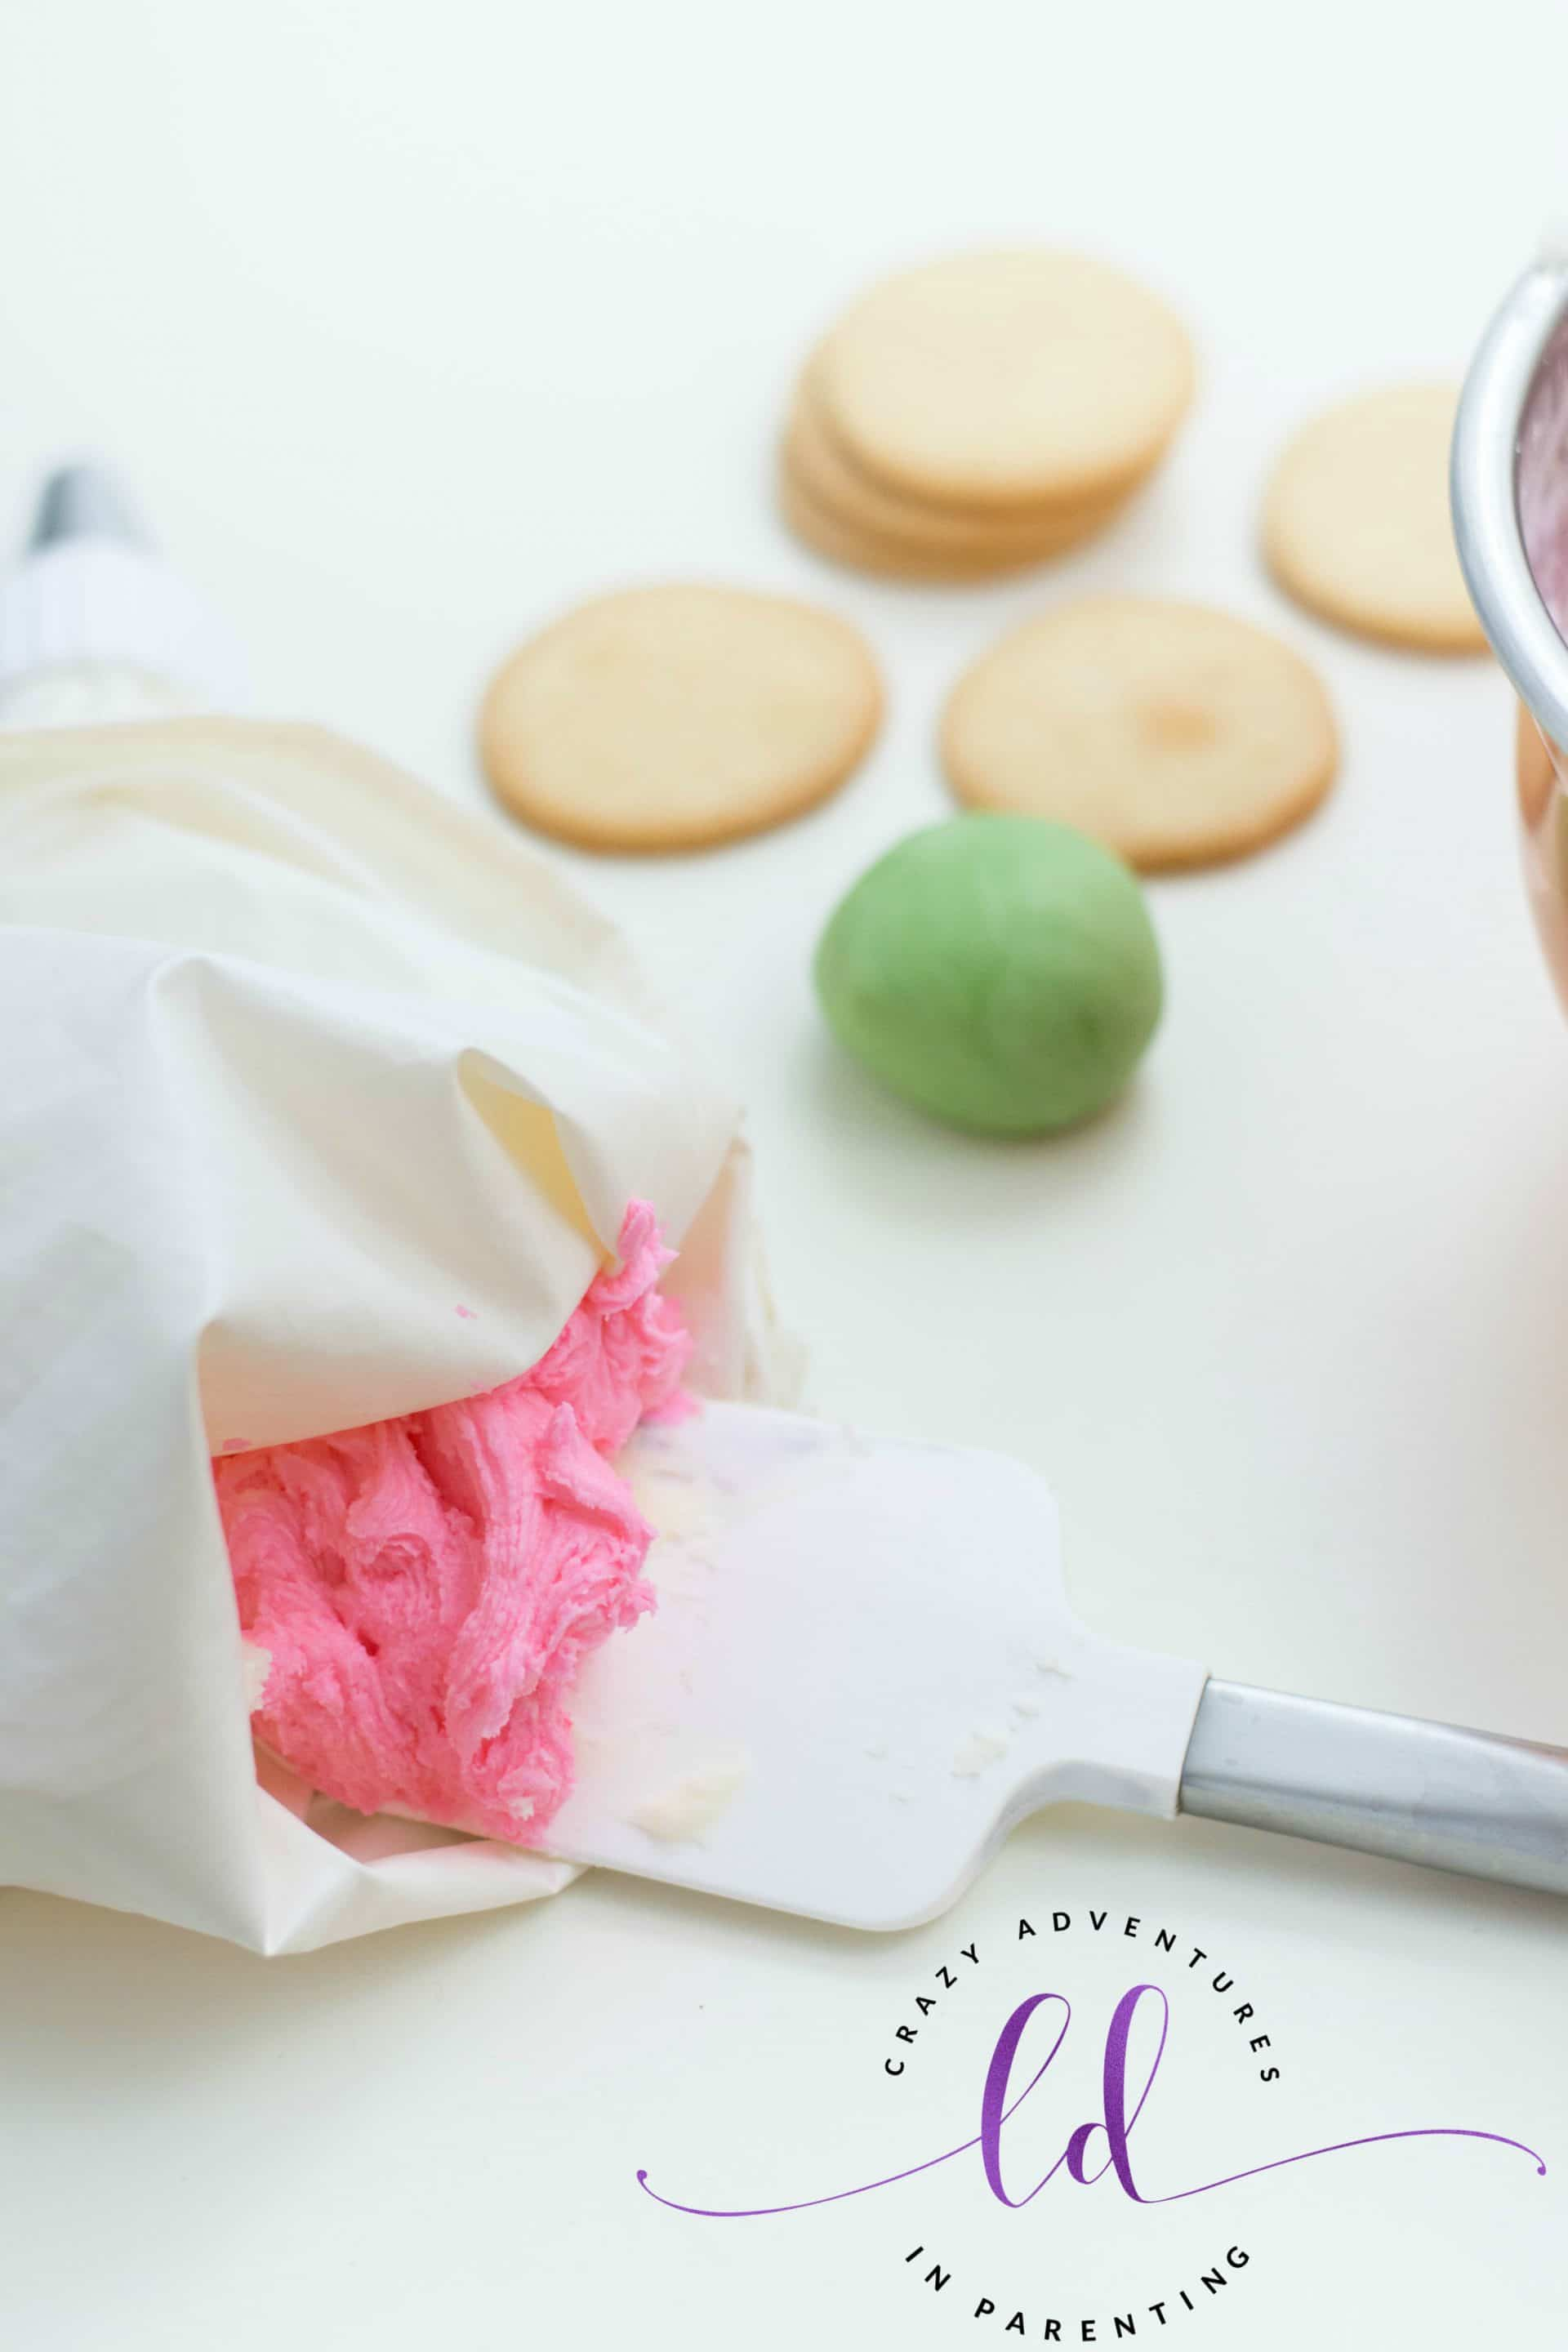 Scoop Buttercream into Piping Bag for Rose Sugar Cookies